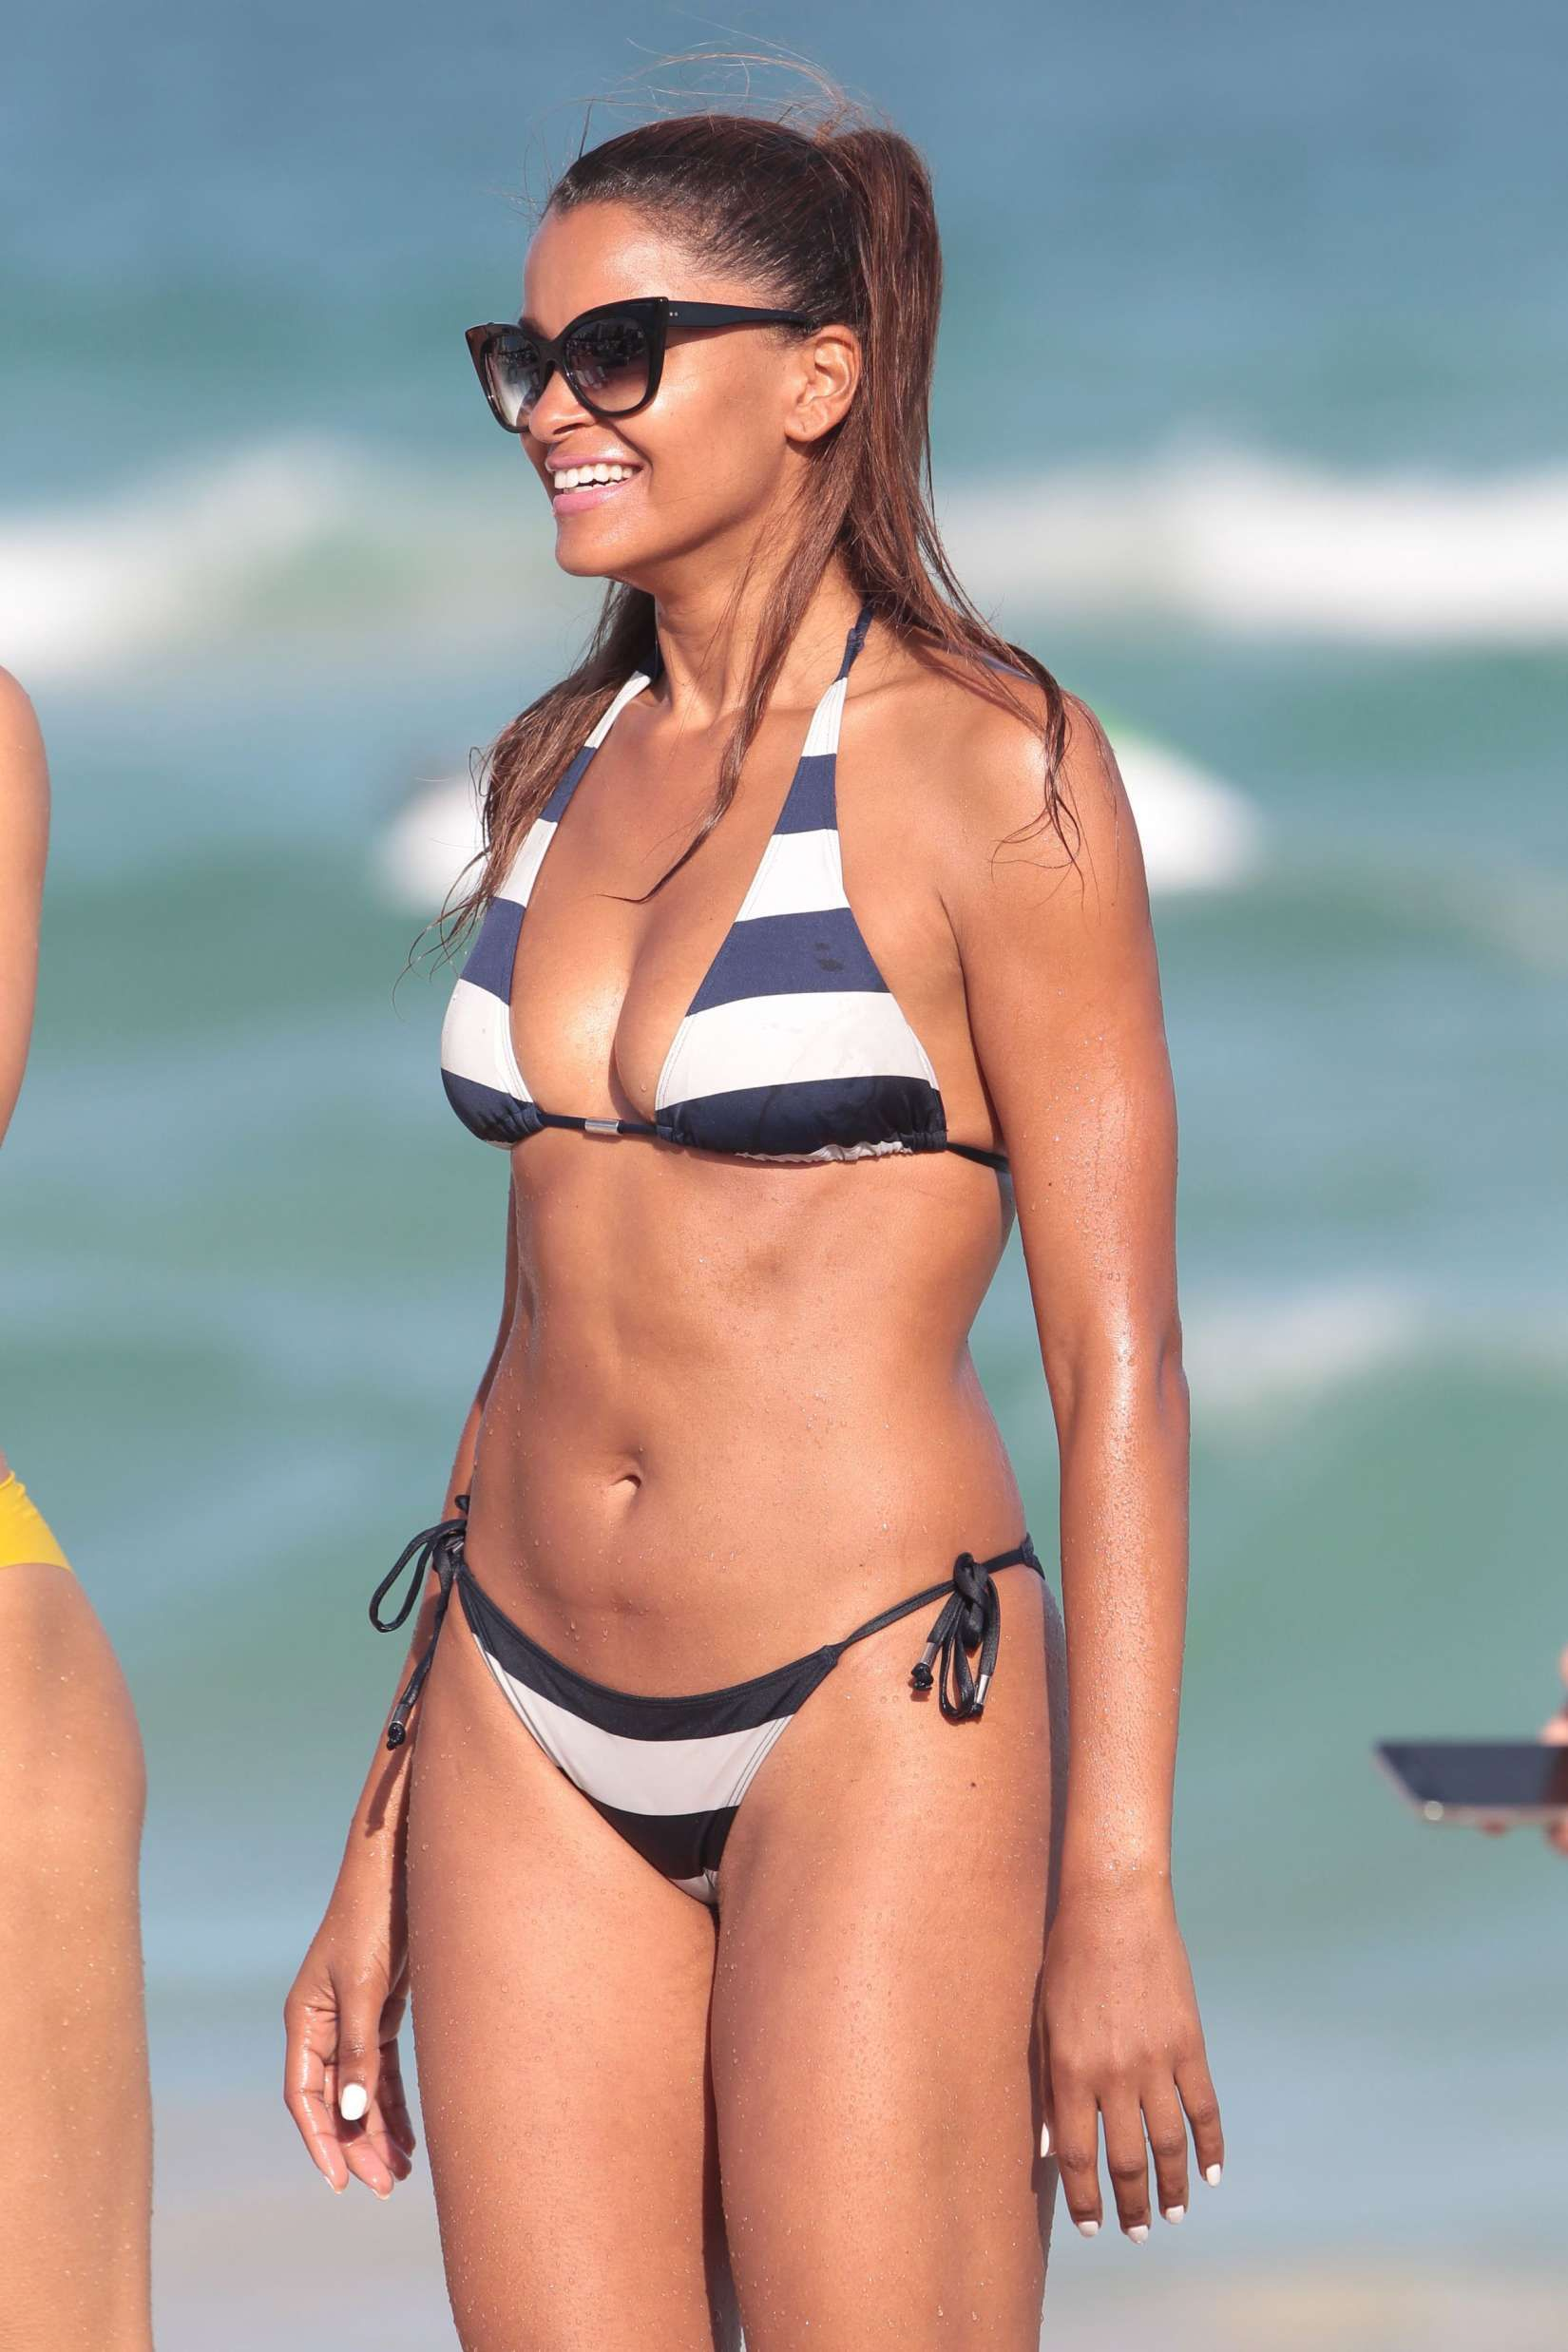 3608351caeaa29 Babes: Claudia Jordan Bikini Miami - Pictures, Videos and Games ...